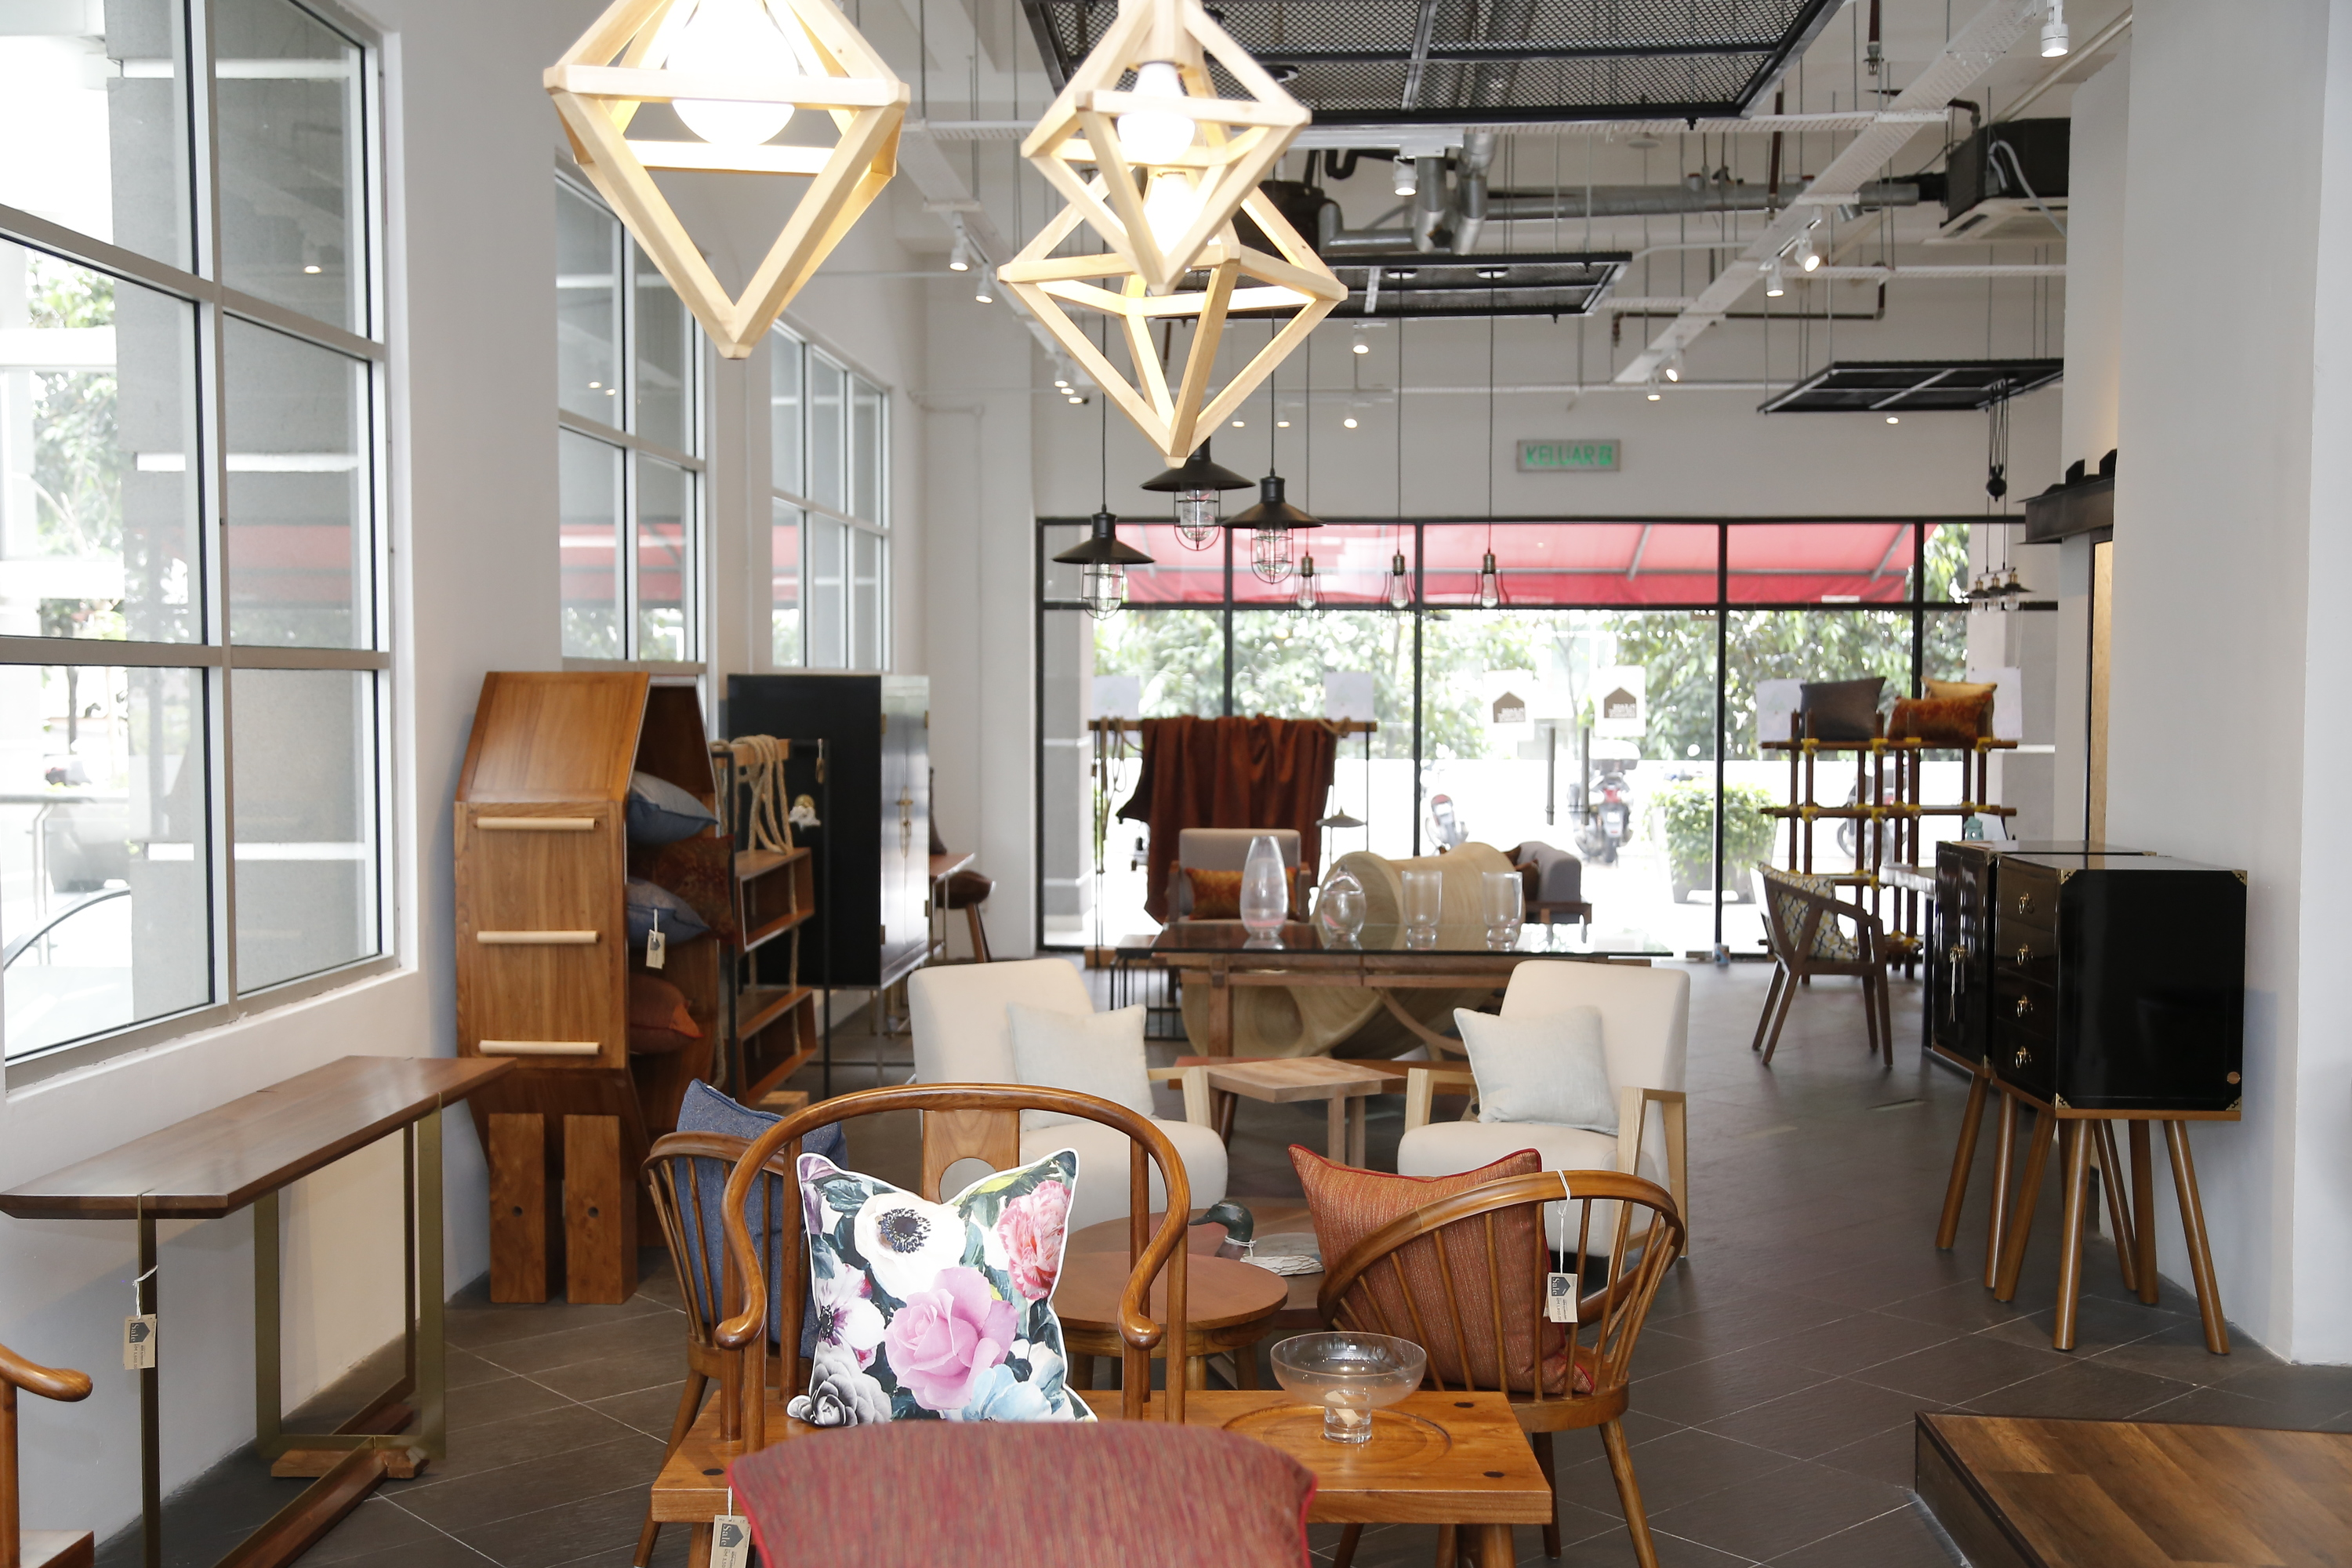 Guide to home makeovers. The best secondhand furniture shops in KL